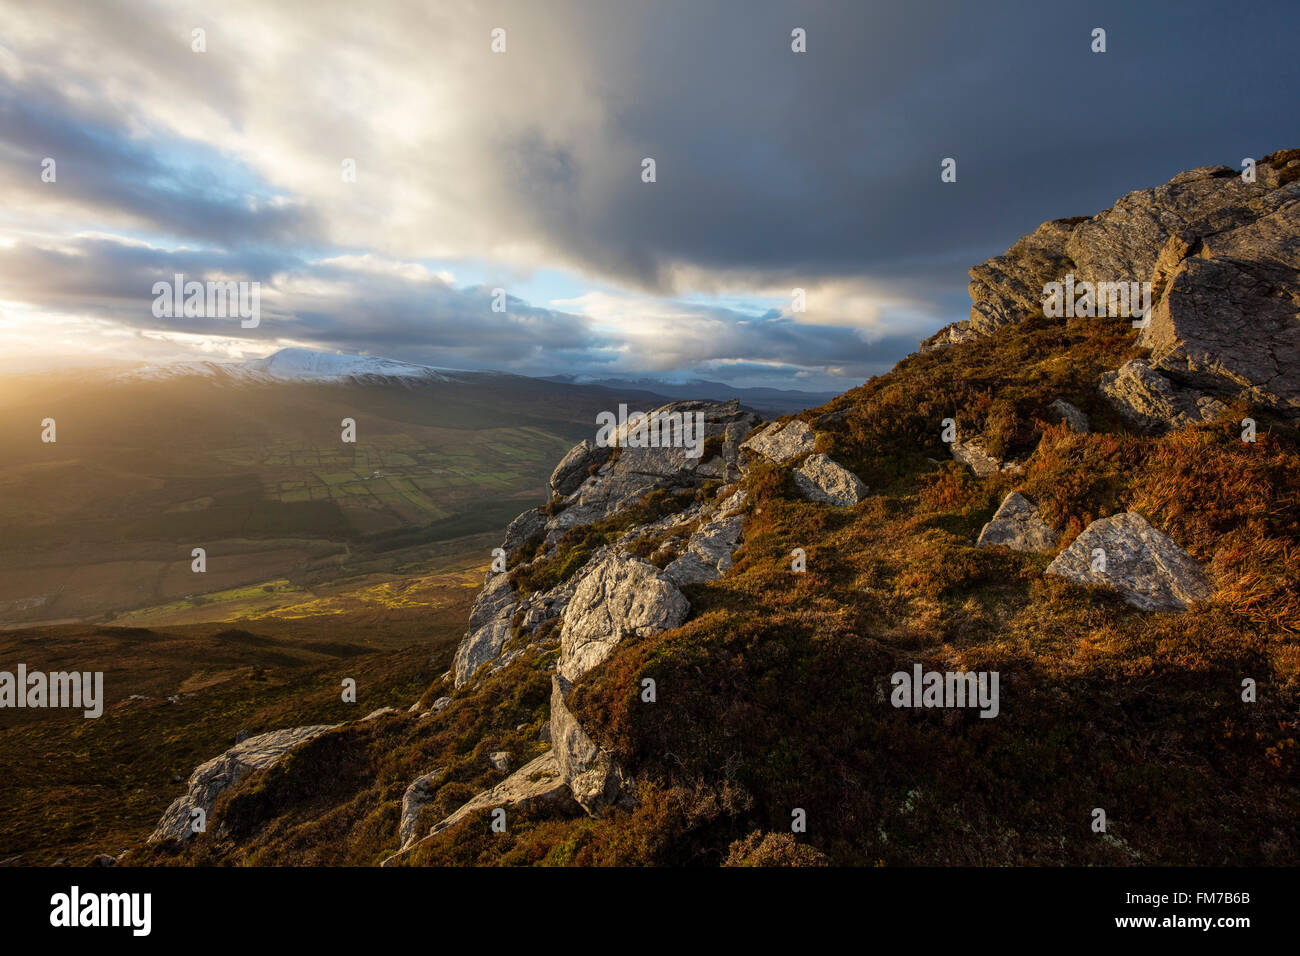 Winter view from Nephin to the Nephin Beg Mountains, County Mayo, Ireland. - Stock Image